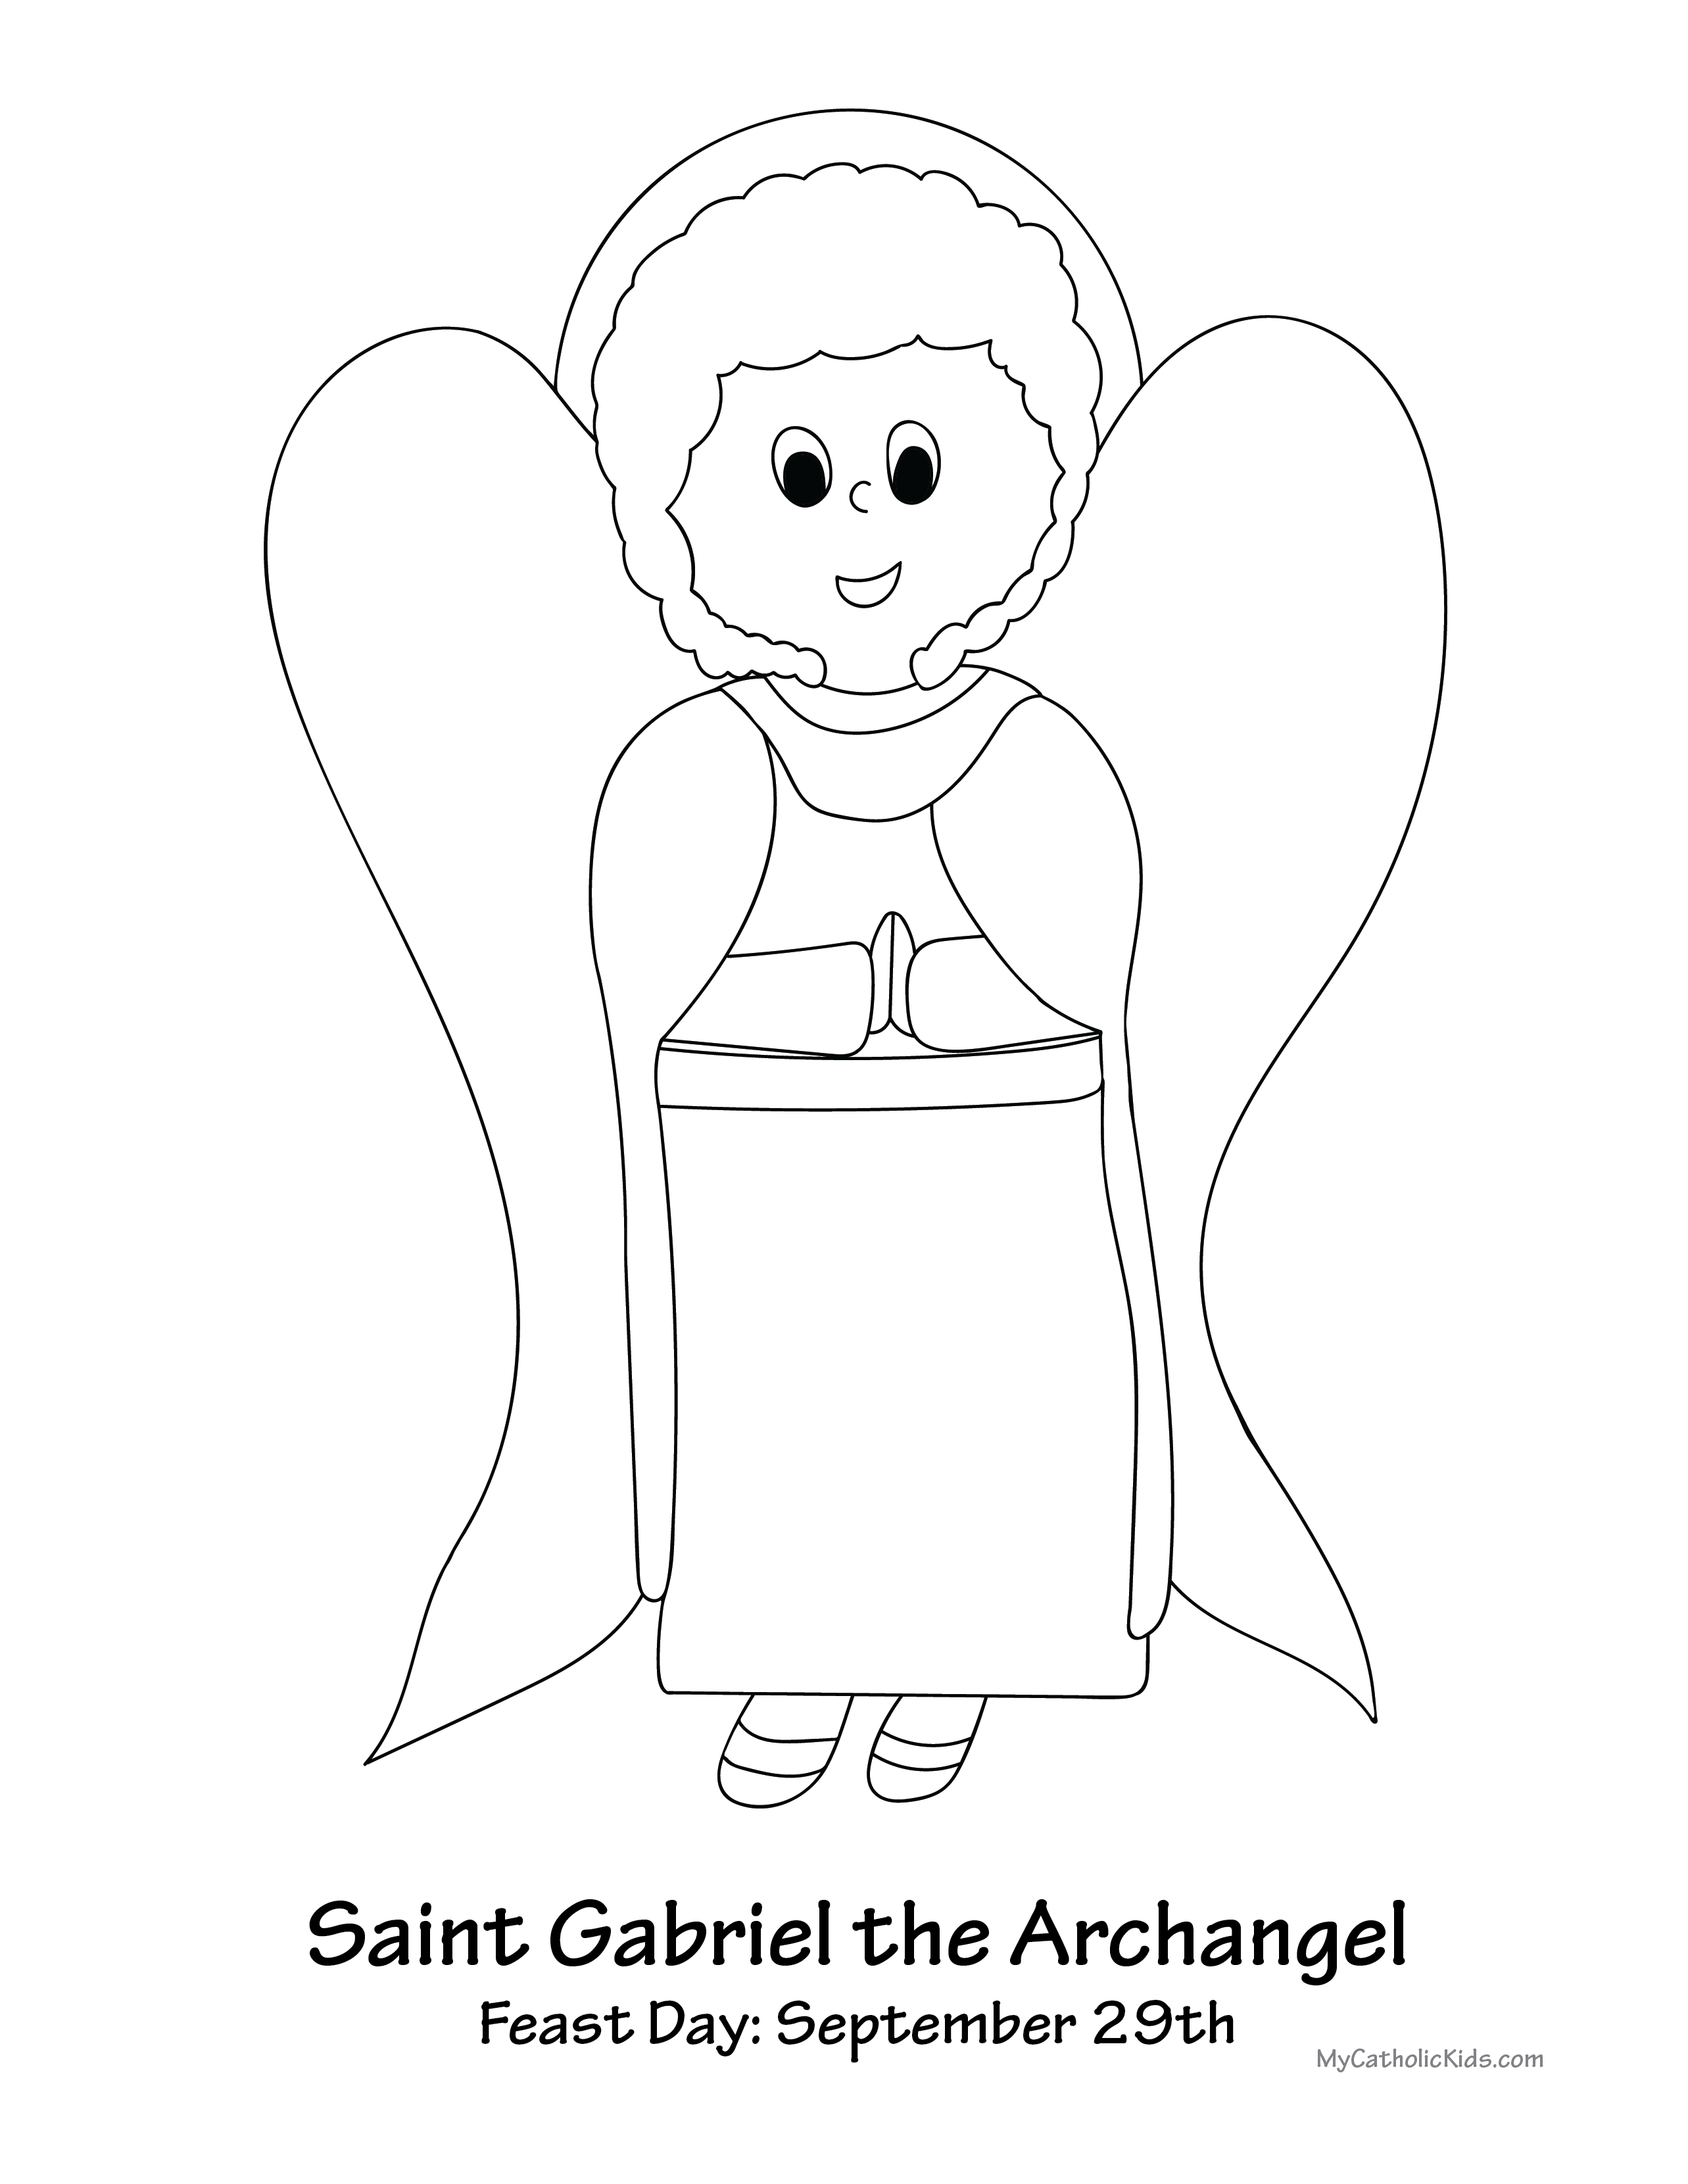 Saint Gabriel the Archangel coloring sheet